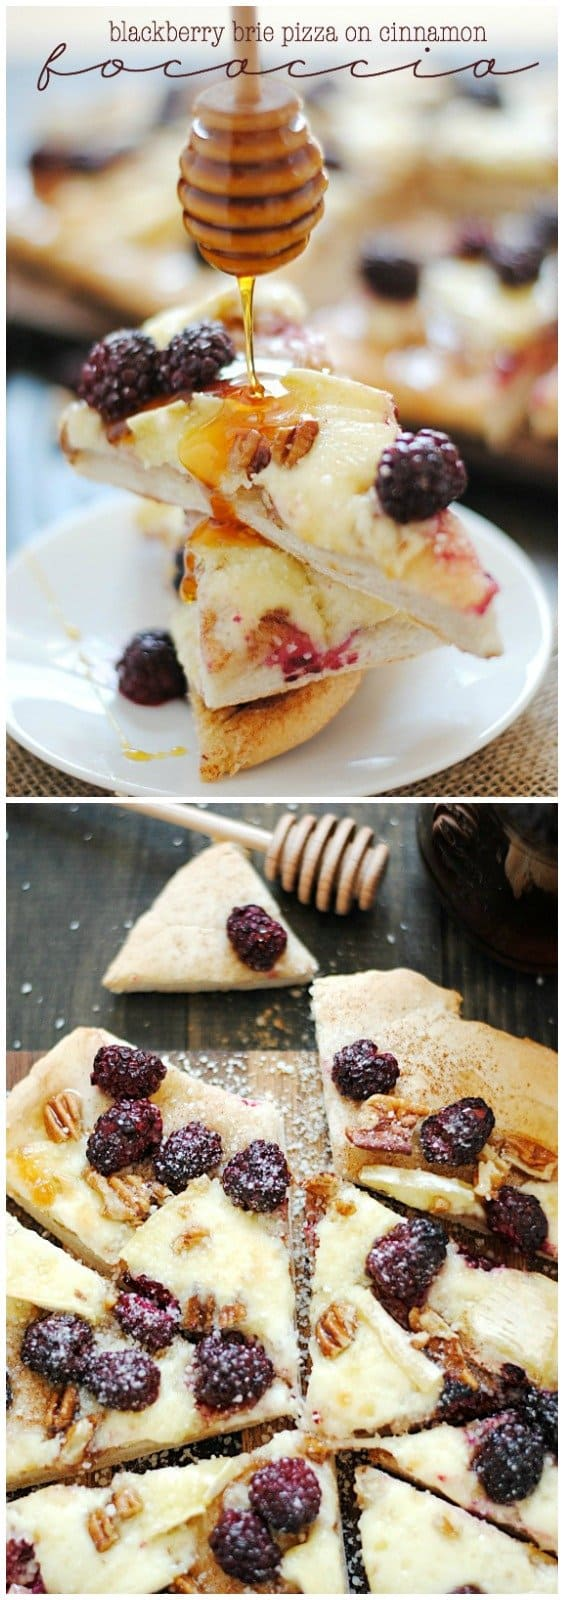 Blackberry Brie Pizza on Cinnamon Focaccia | www.somethingswanky.com